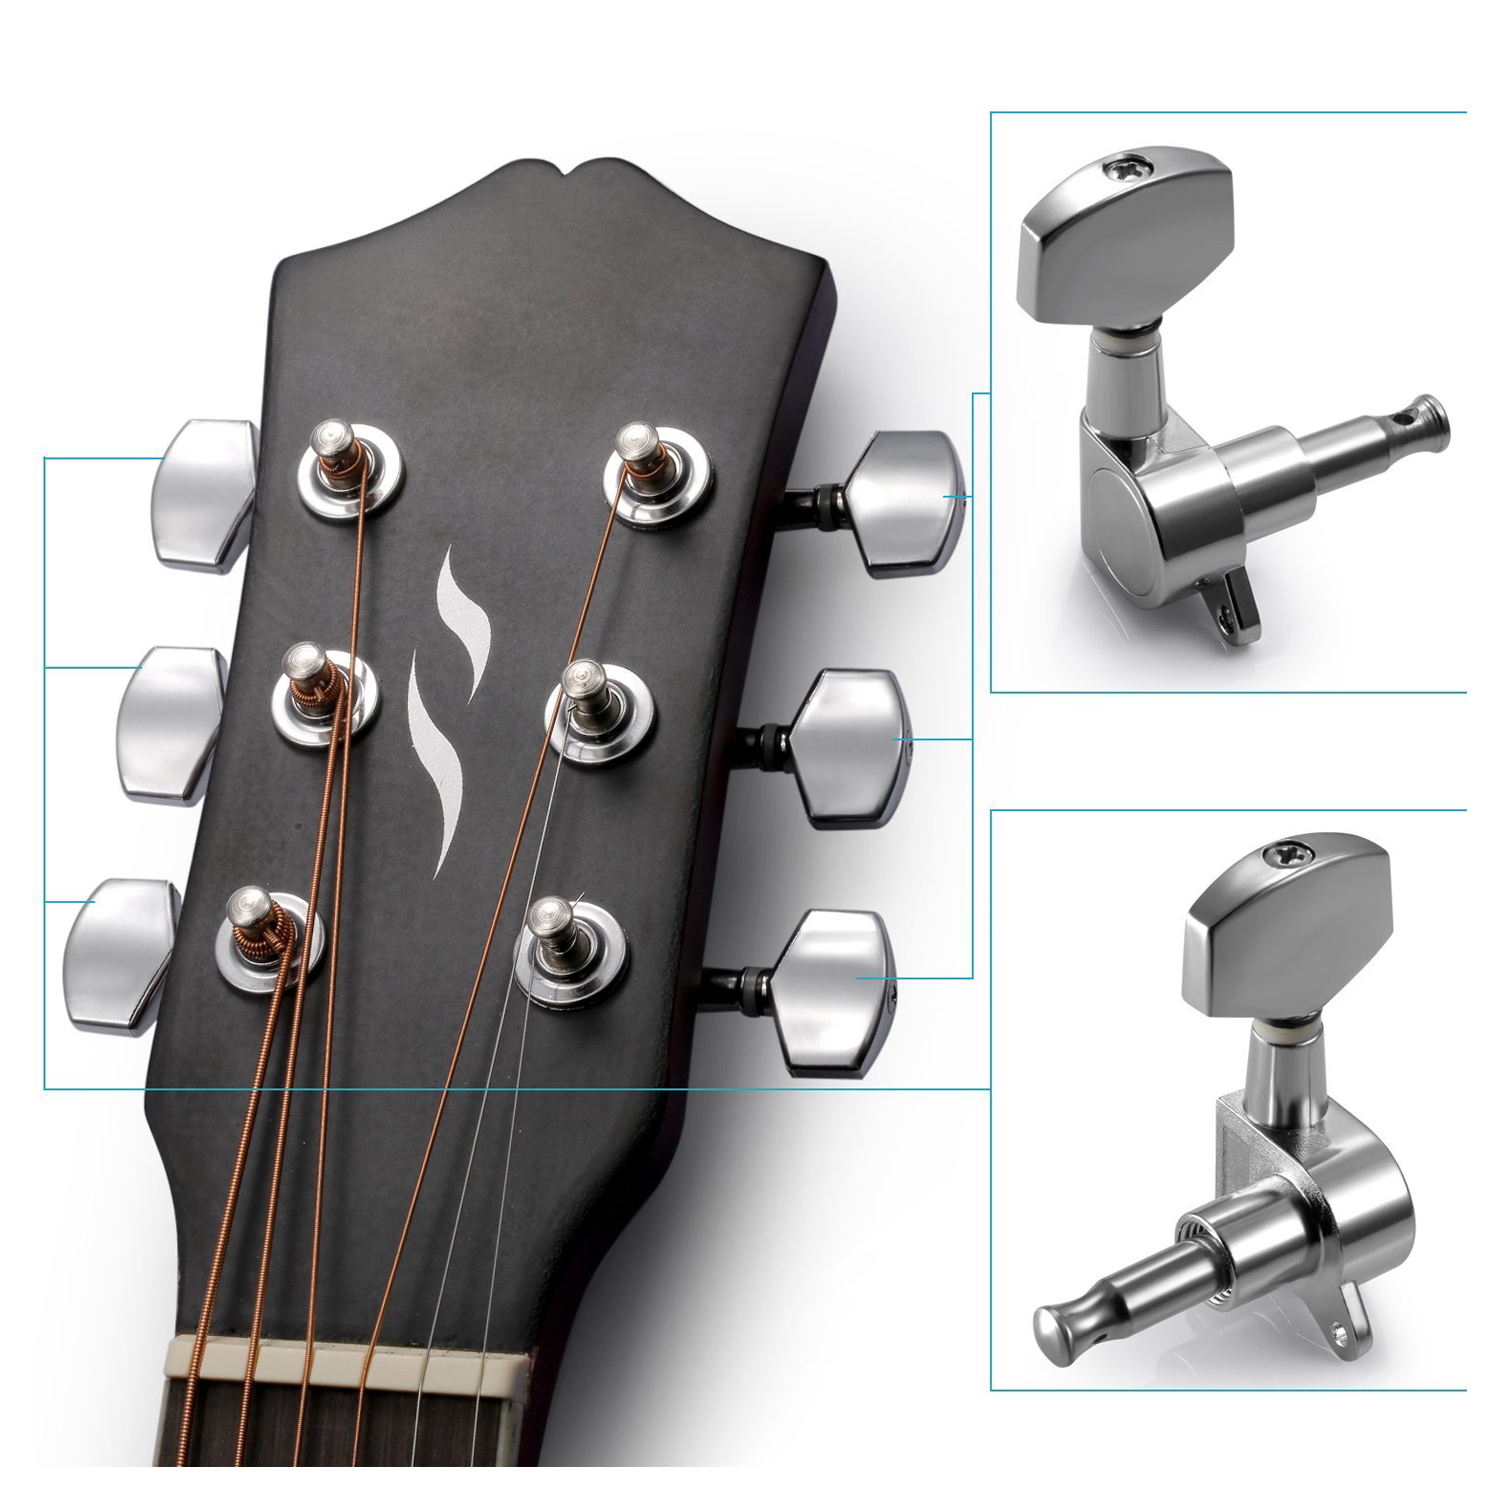 irin 6 pieces sliver acoustic guitar machine heads knobs guitar string tuning peg tuner 3 for. Black Bedroom Furniture Sets. Home Design Ideas